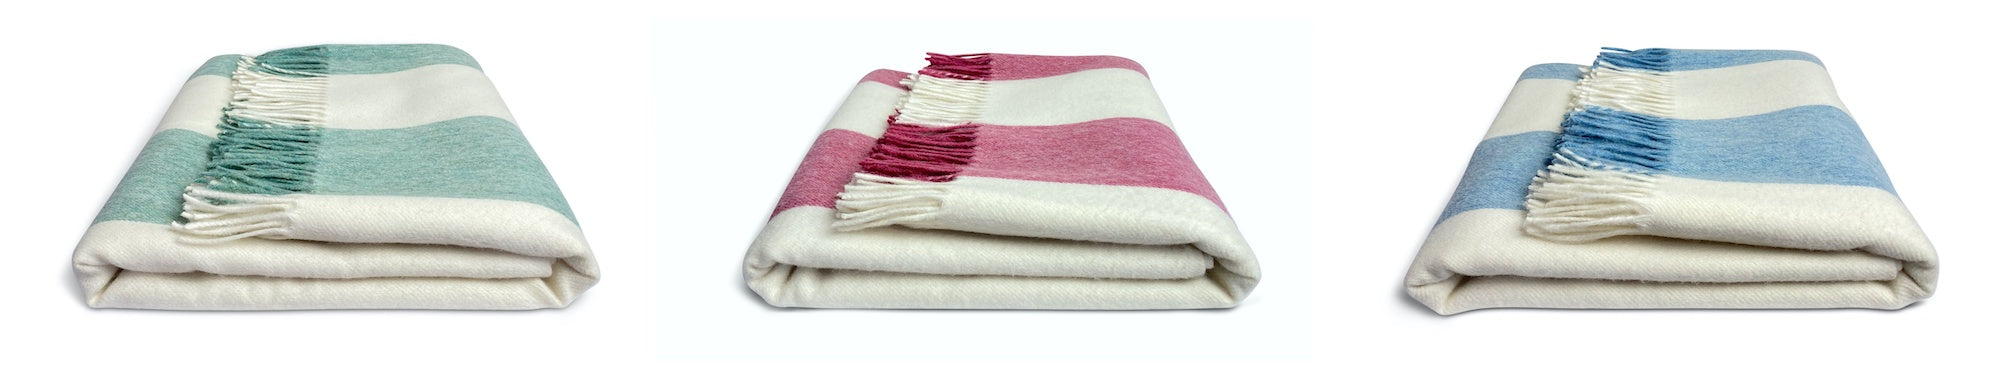 Issy Granger | Striped Merino Lambswool Throws